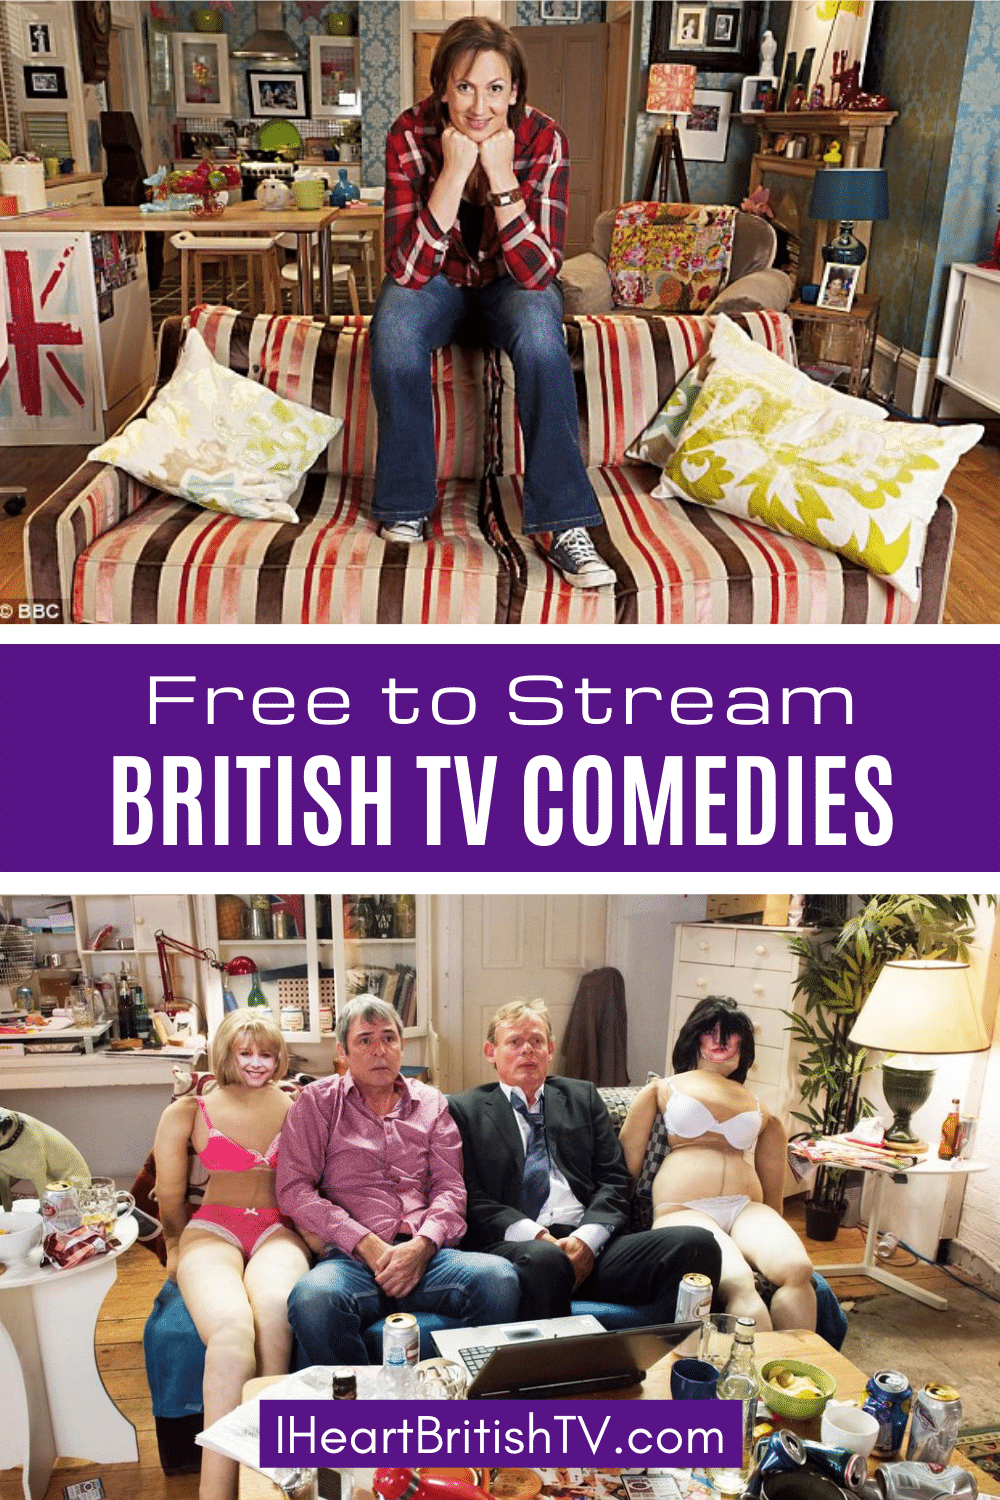 70+ British Comedies You Can Watch for Free Online (US) 17